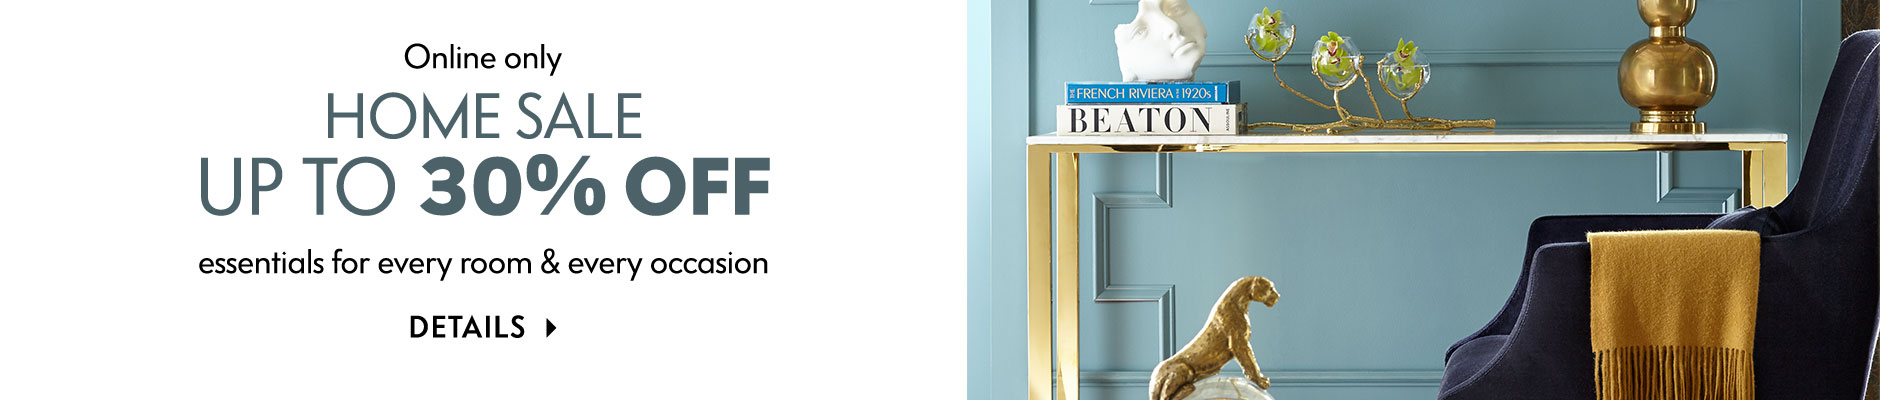 Online only: Home Sale - Up to 30% off essentials for every room & every occasion